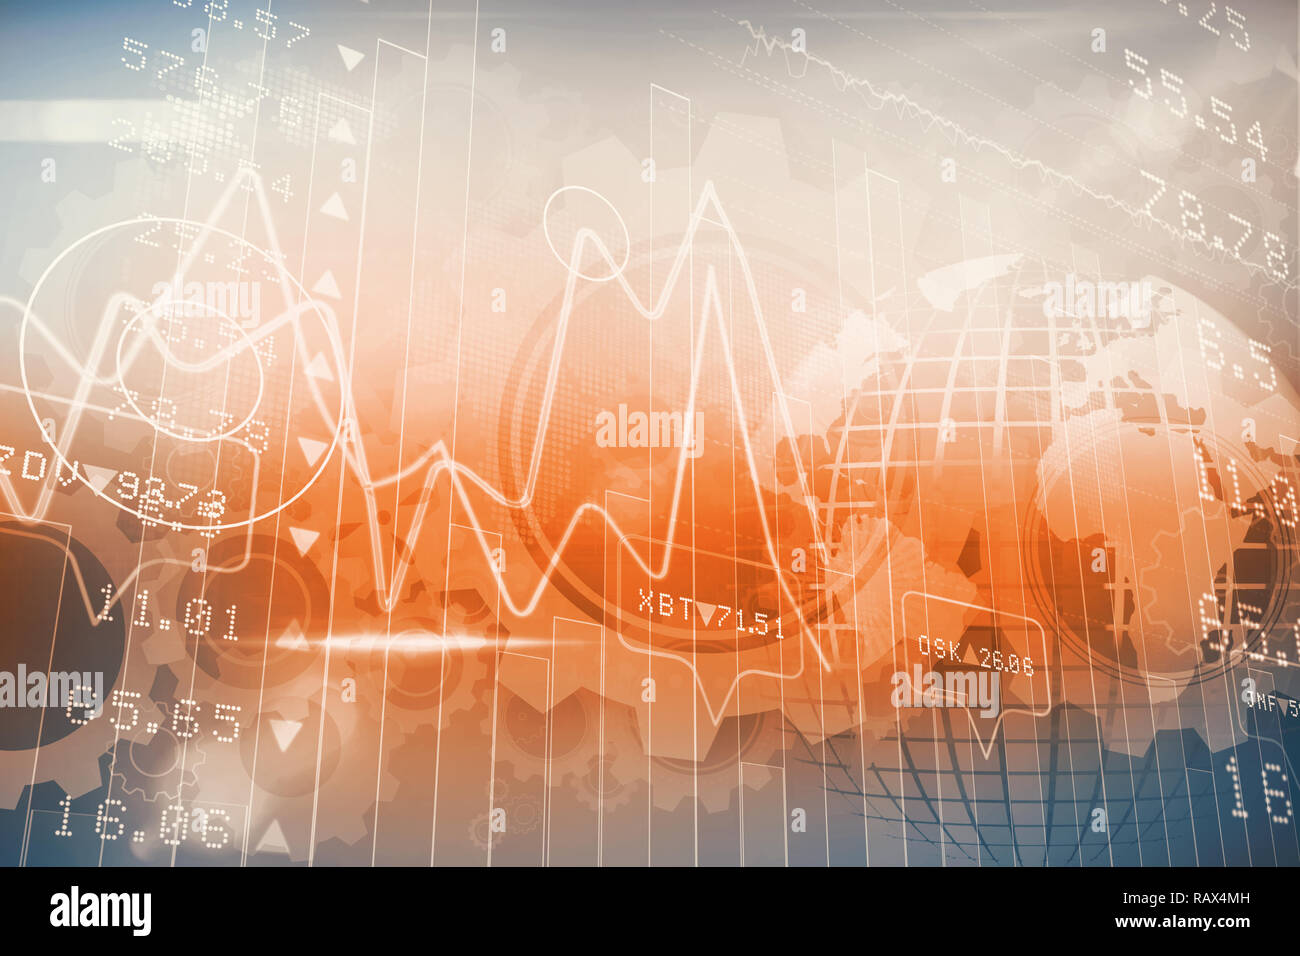 Stocks and shares - Stock Image